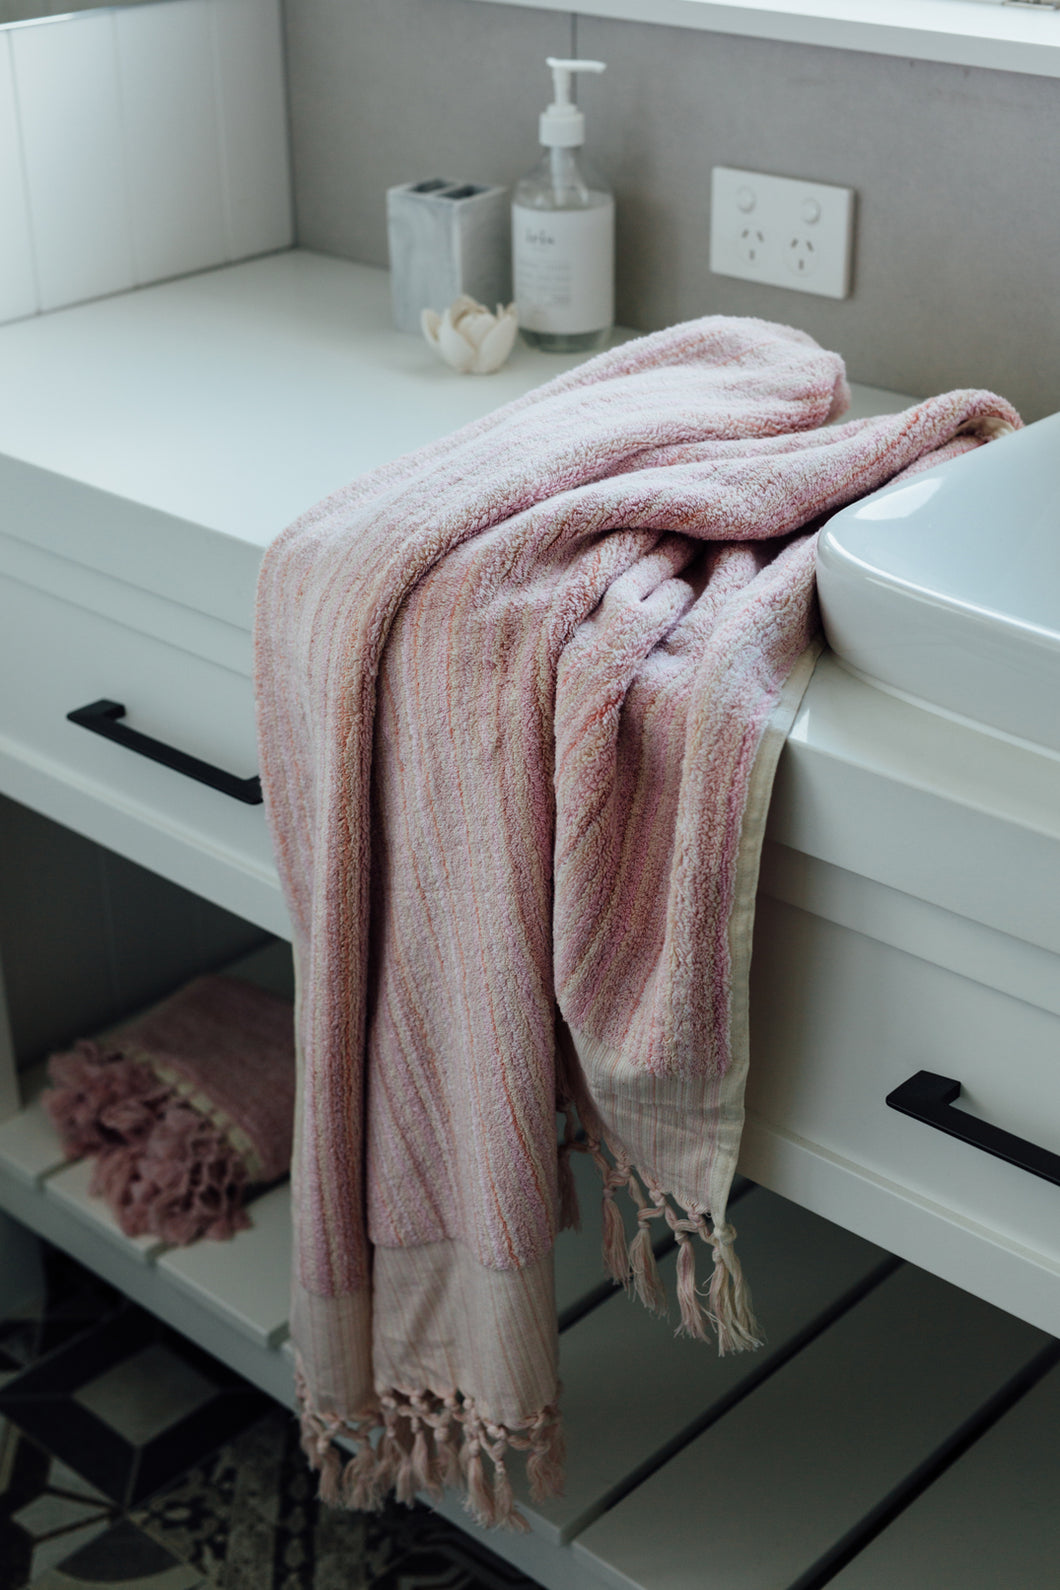 Blush Pink Bath Towel